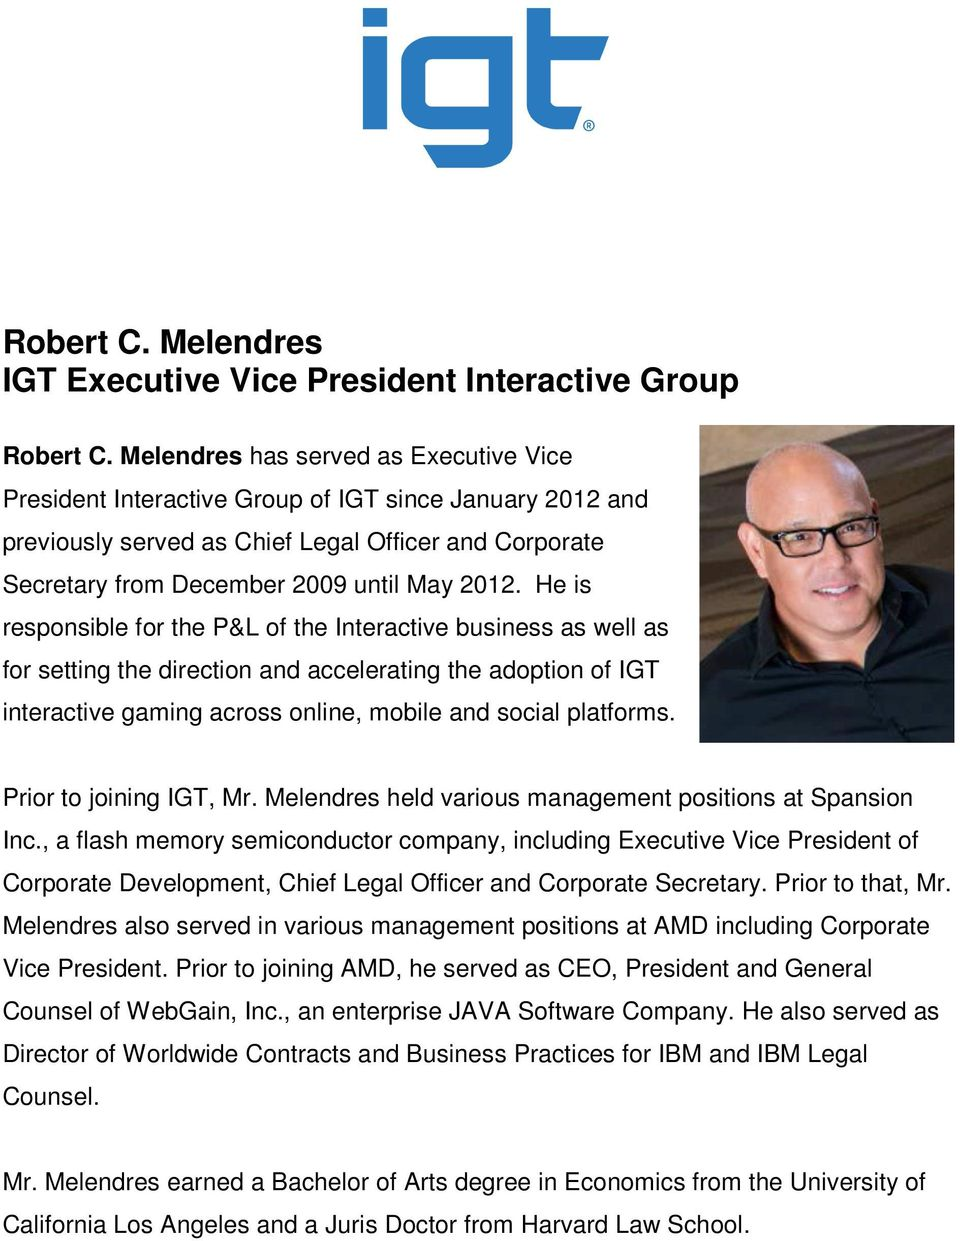 He is responsible for the P&L of the Interactive business as well as for setting the direction and accelerating the adoption of IGT interactive gaming across online, mobile and social platforms.